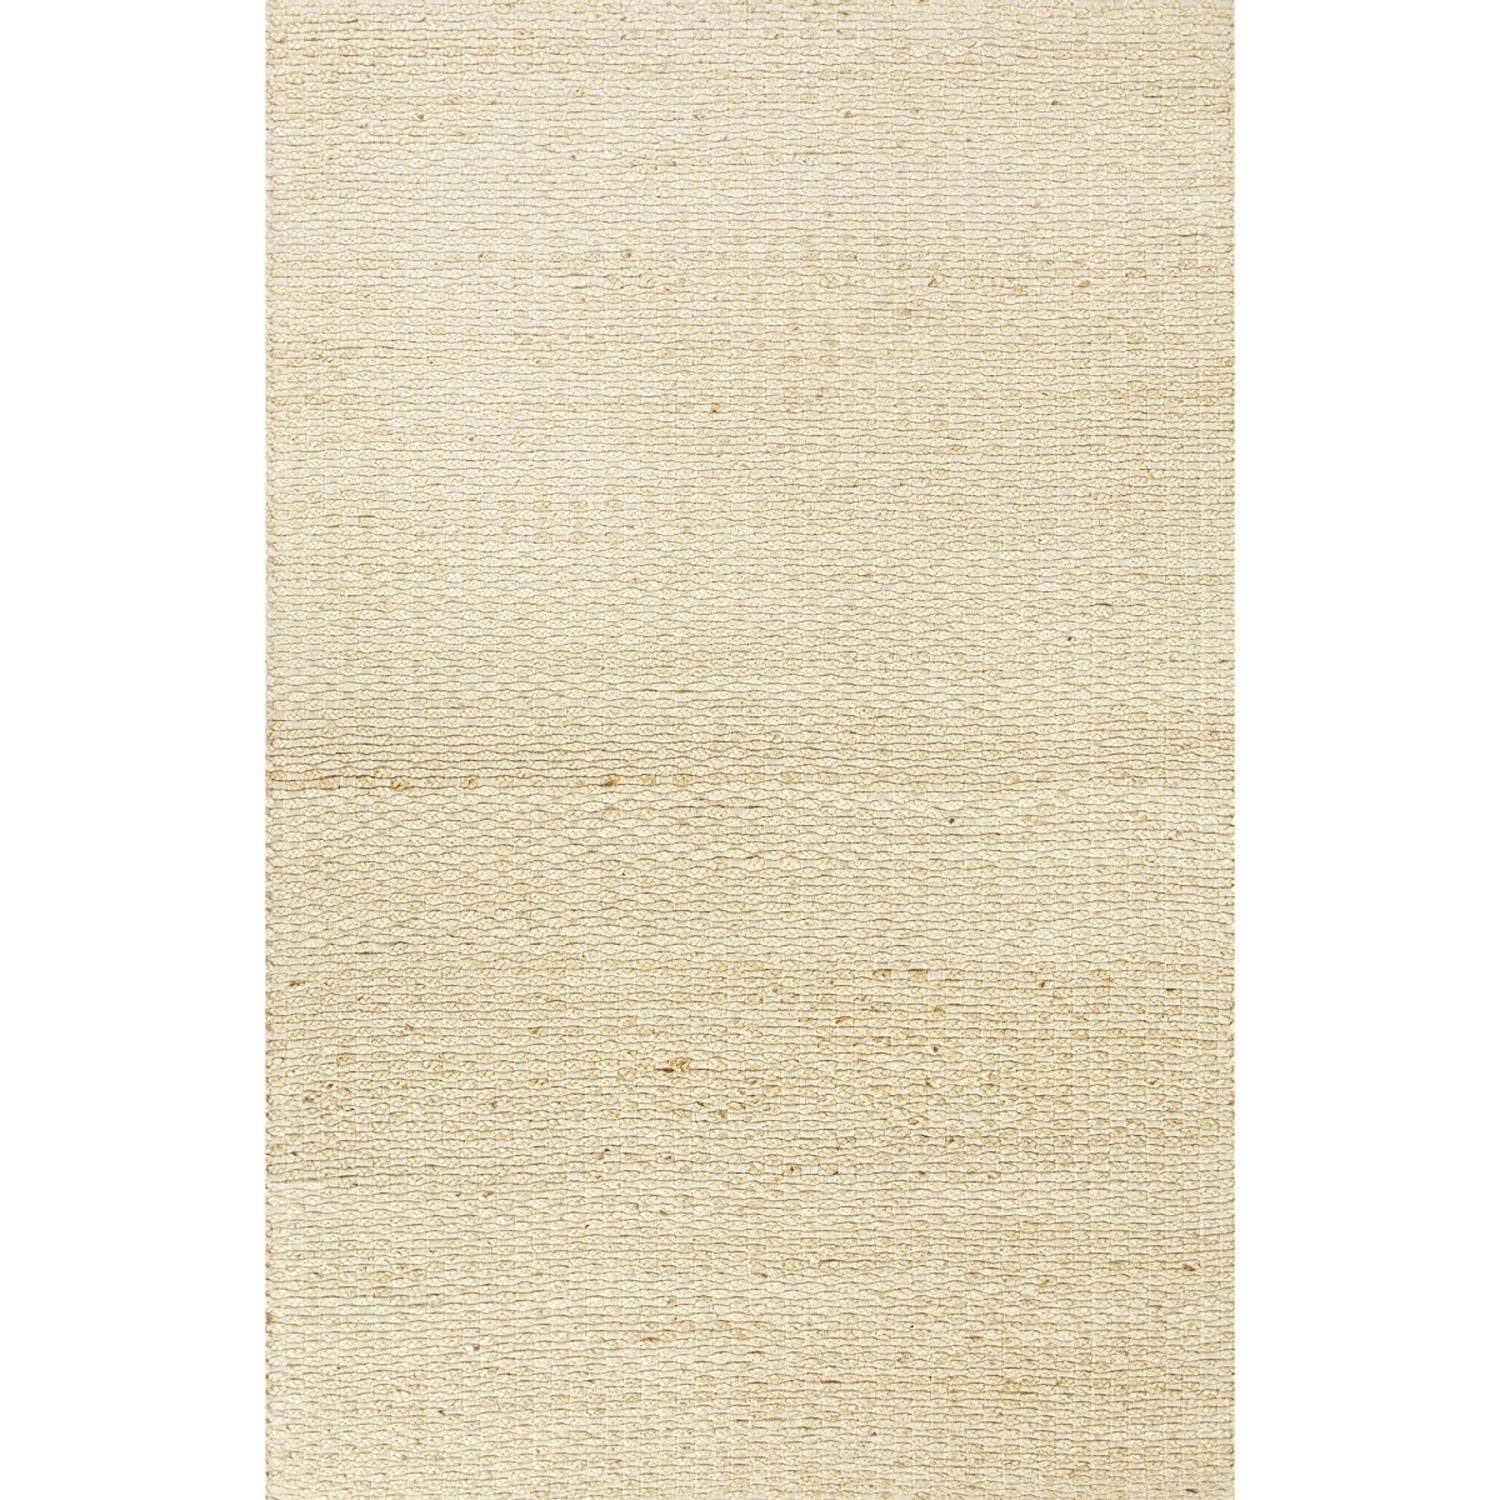 9' x 12'  Beige Naturals Braidley Hand Woven Jute and Chindi Cotton Area Throw Rug